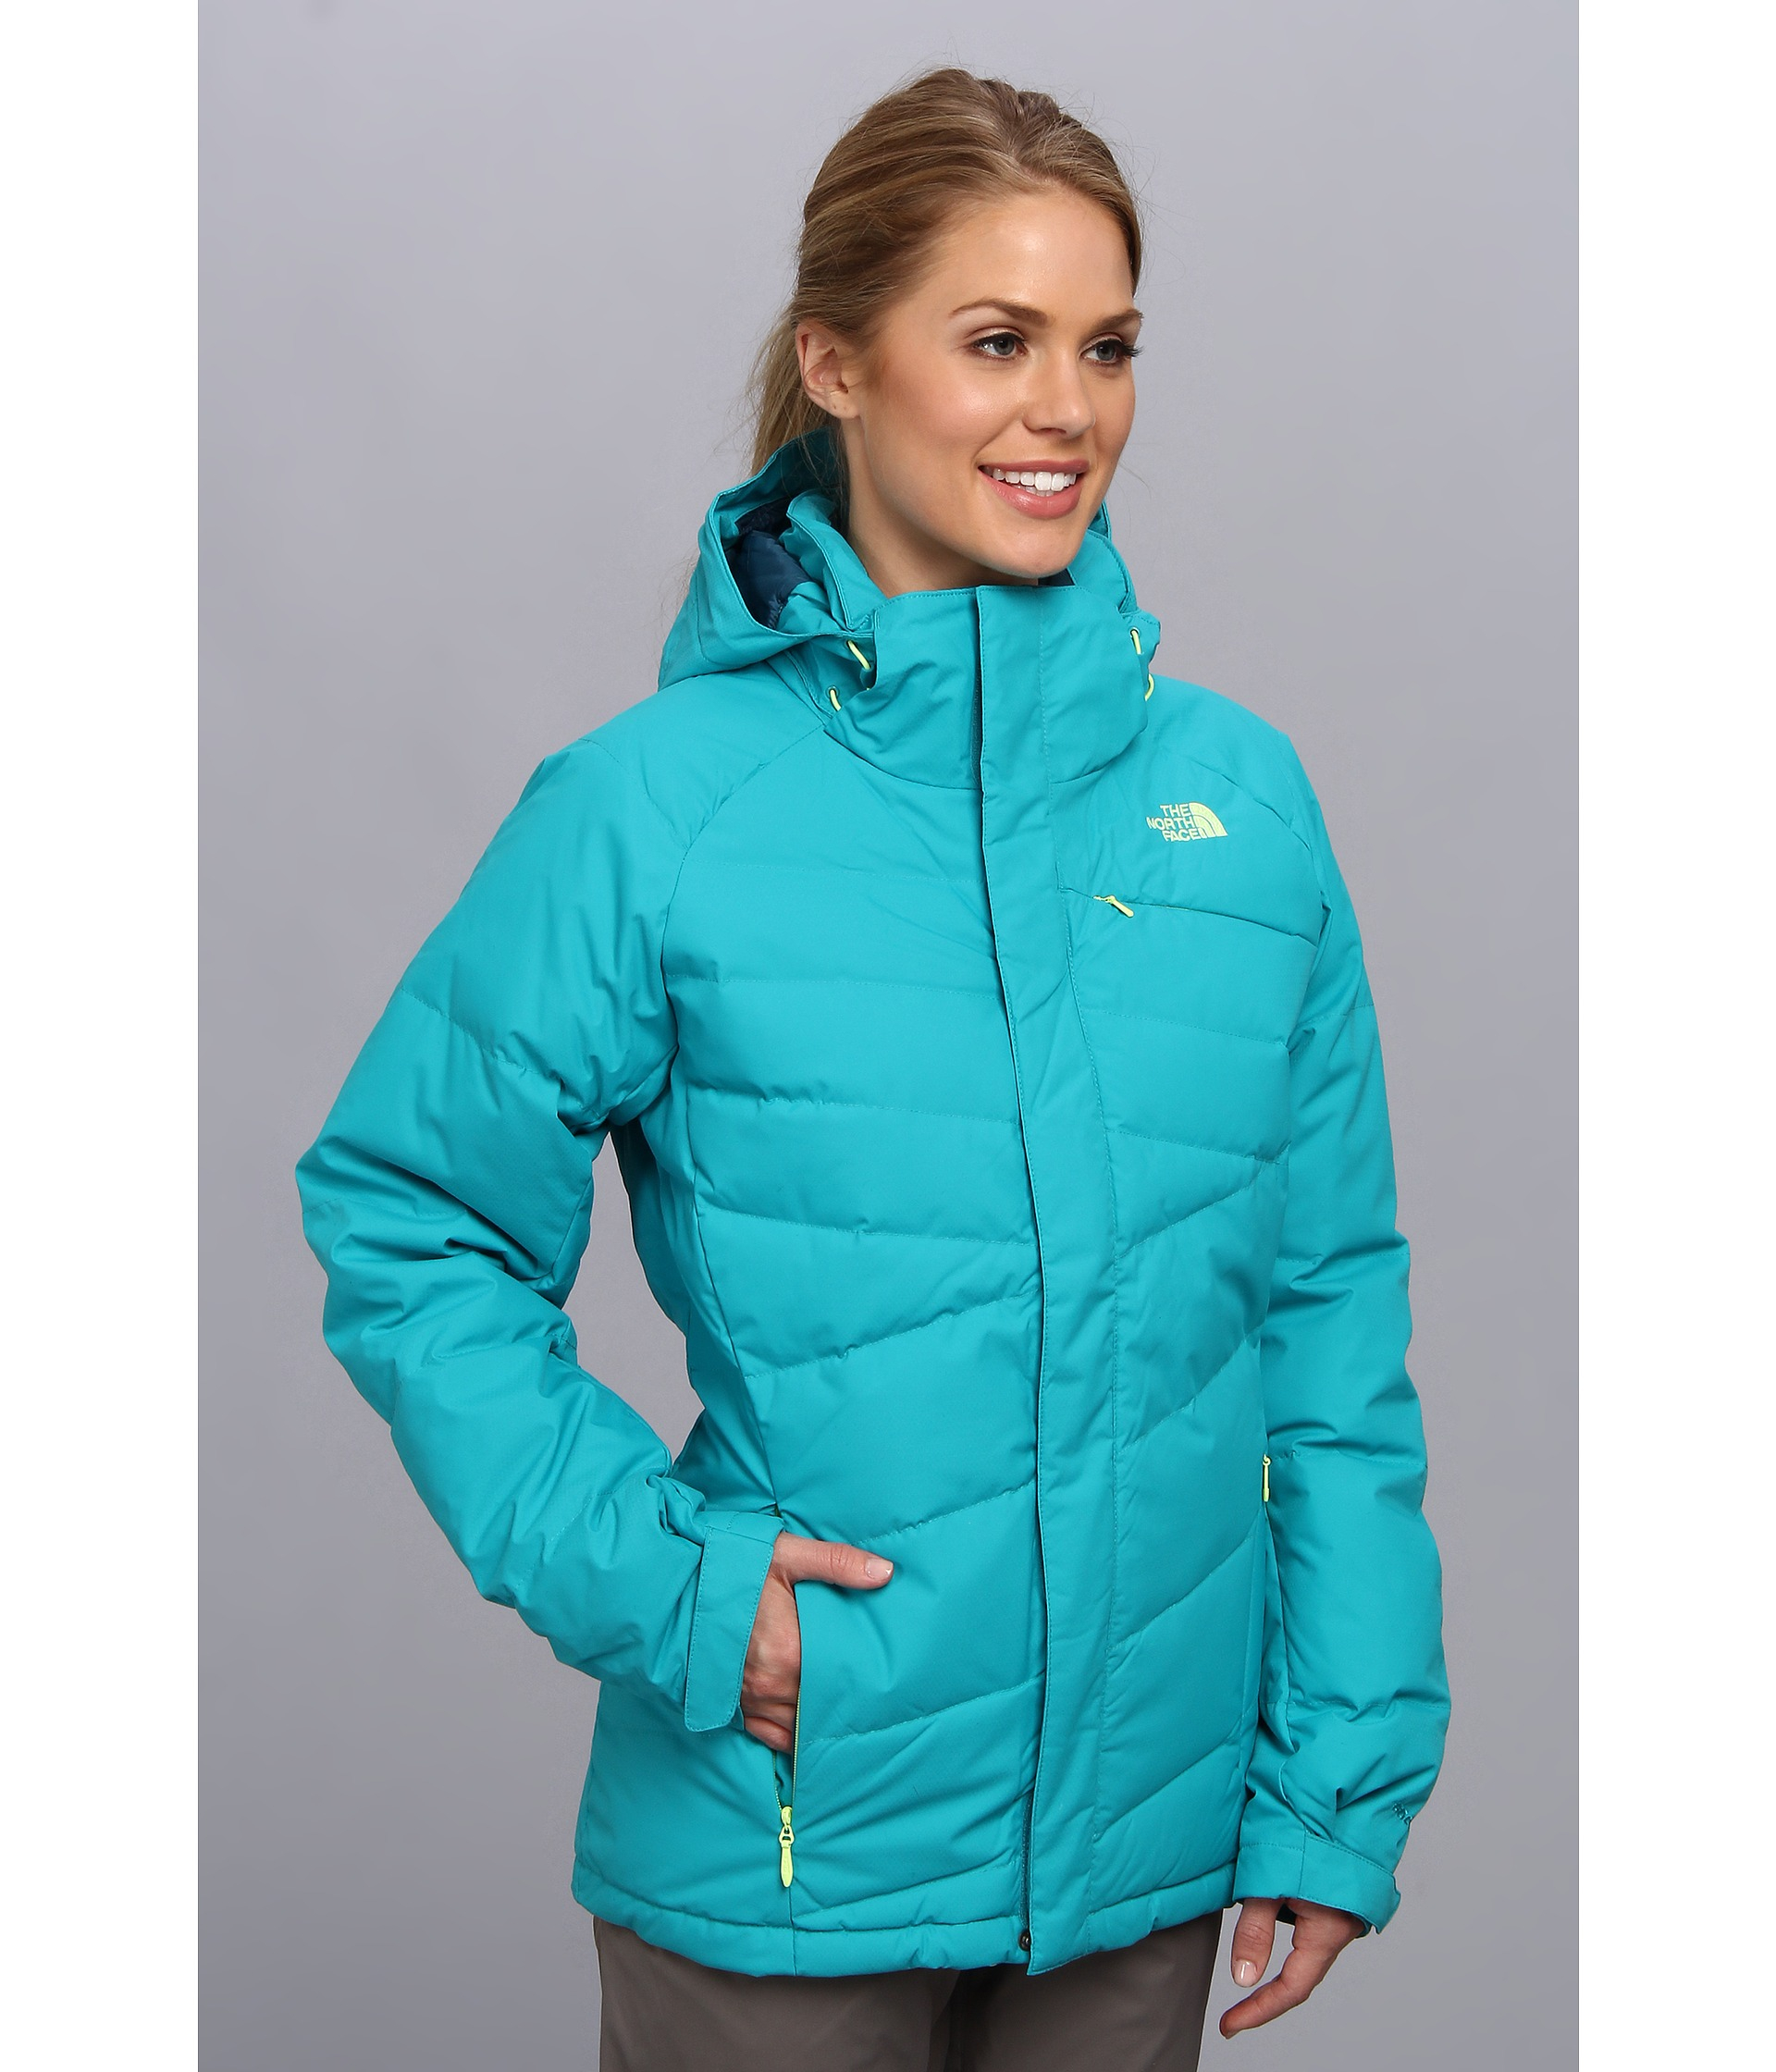 Lyst - The North Face Heavenly Down Jacket in Blue 24980b8f3